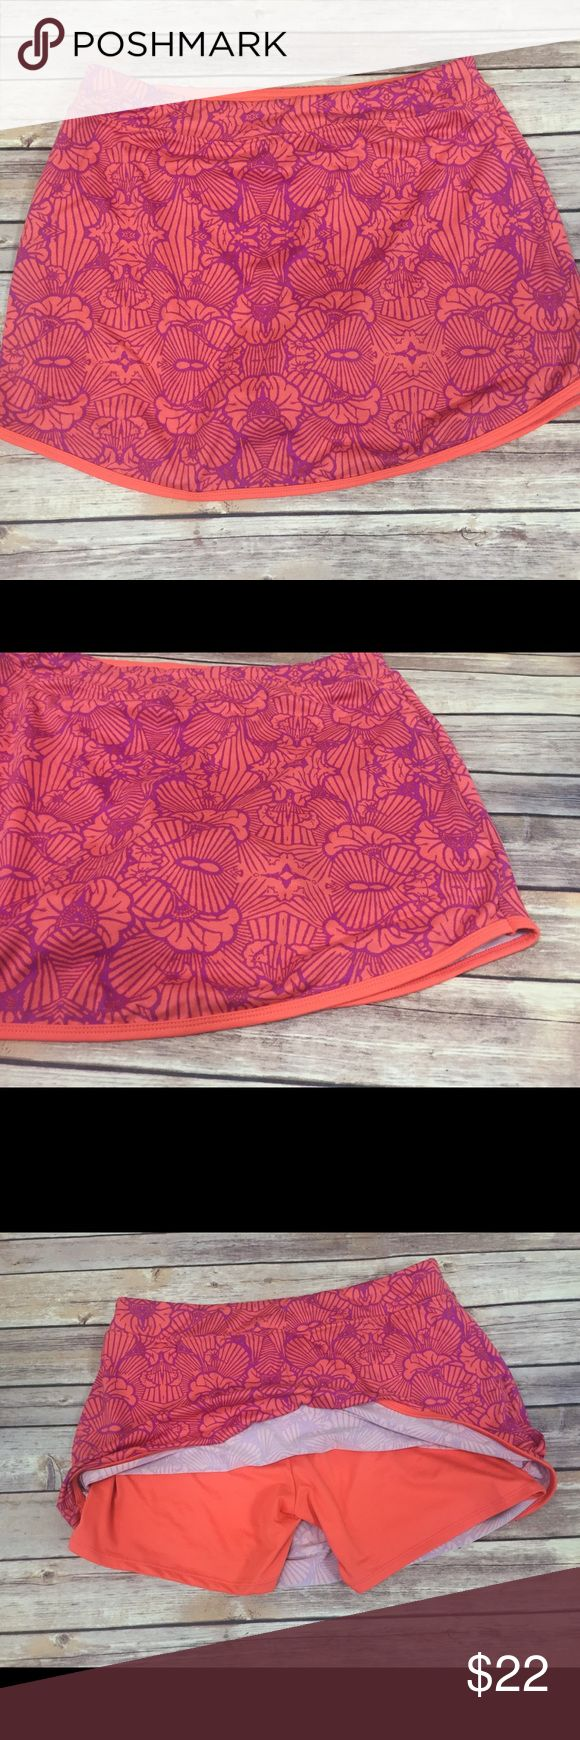 """Lola by AFG Athletic Skirt Skort Pink Size Large Lola by AFG. Pink floral pattern. Built in activewear shorts. Women's size large. Waist 15.5"""" length 14"""" Gently used. Lola Skirts Mini"""